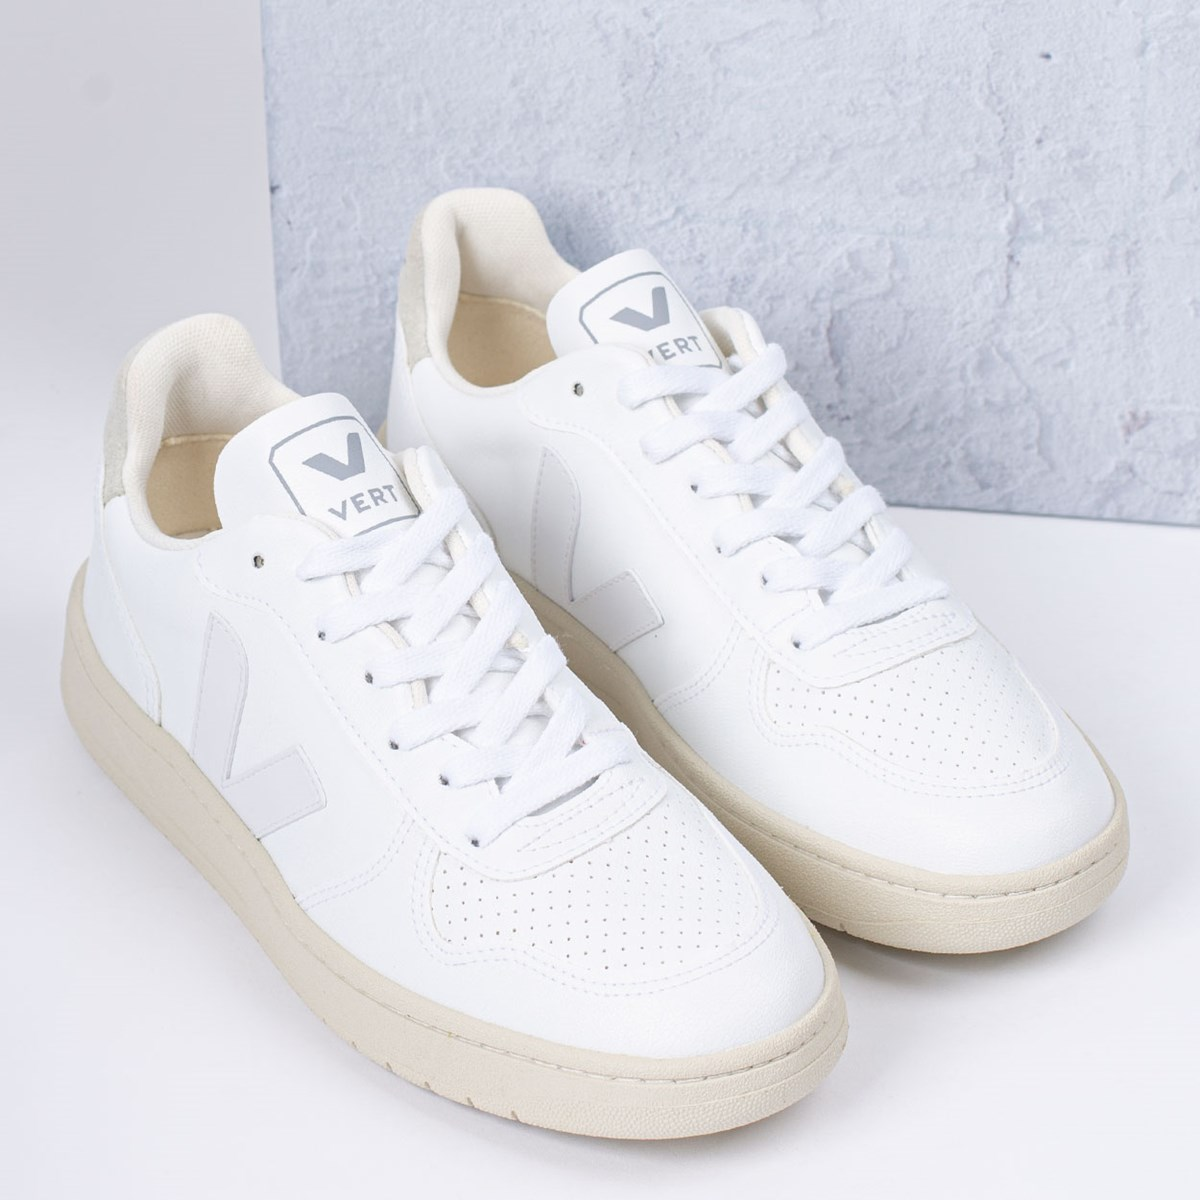 Tênis Vert Shoes V-10 CWL White White Natural VX072071